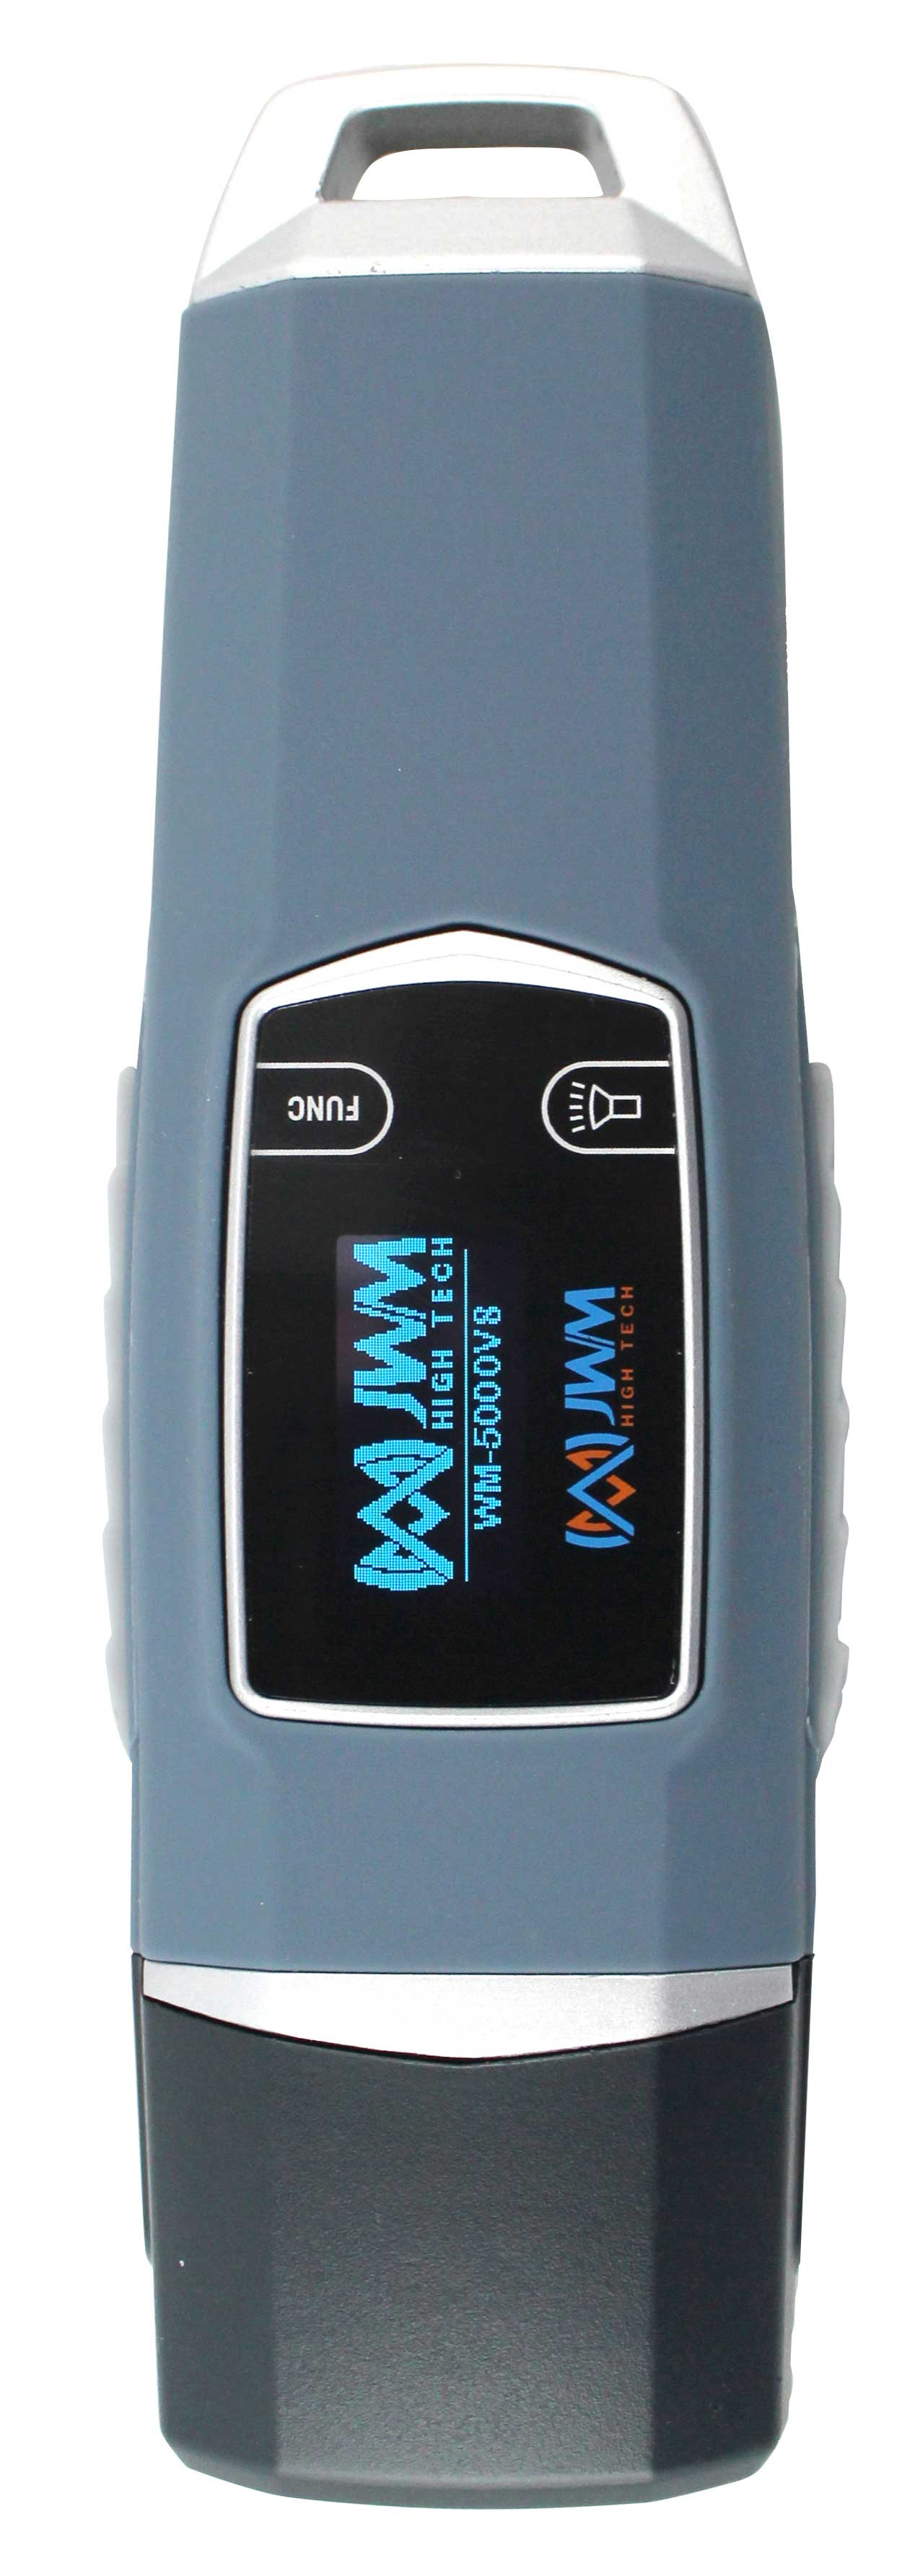 JWM Auto-induction Lcd Screen Guard Control System With Free Cloud Software